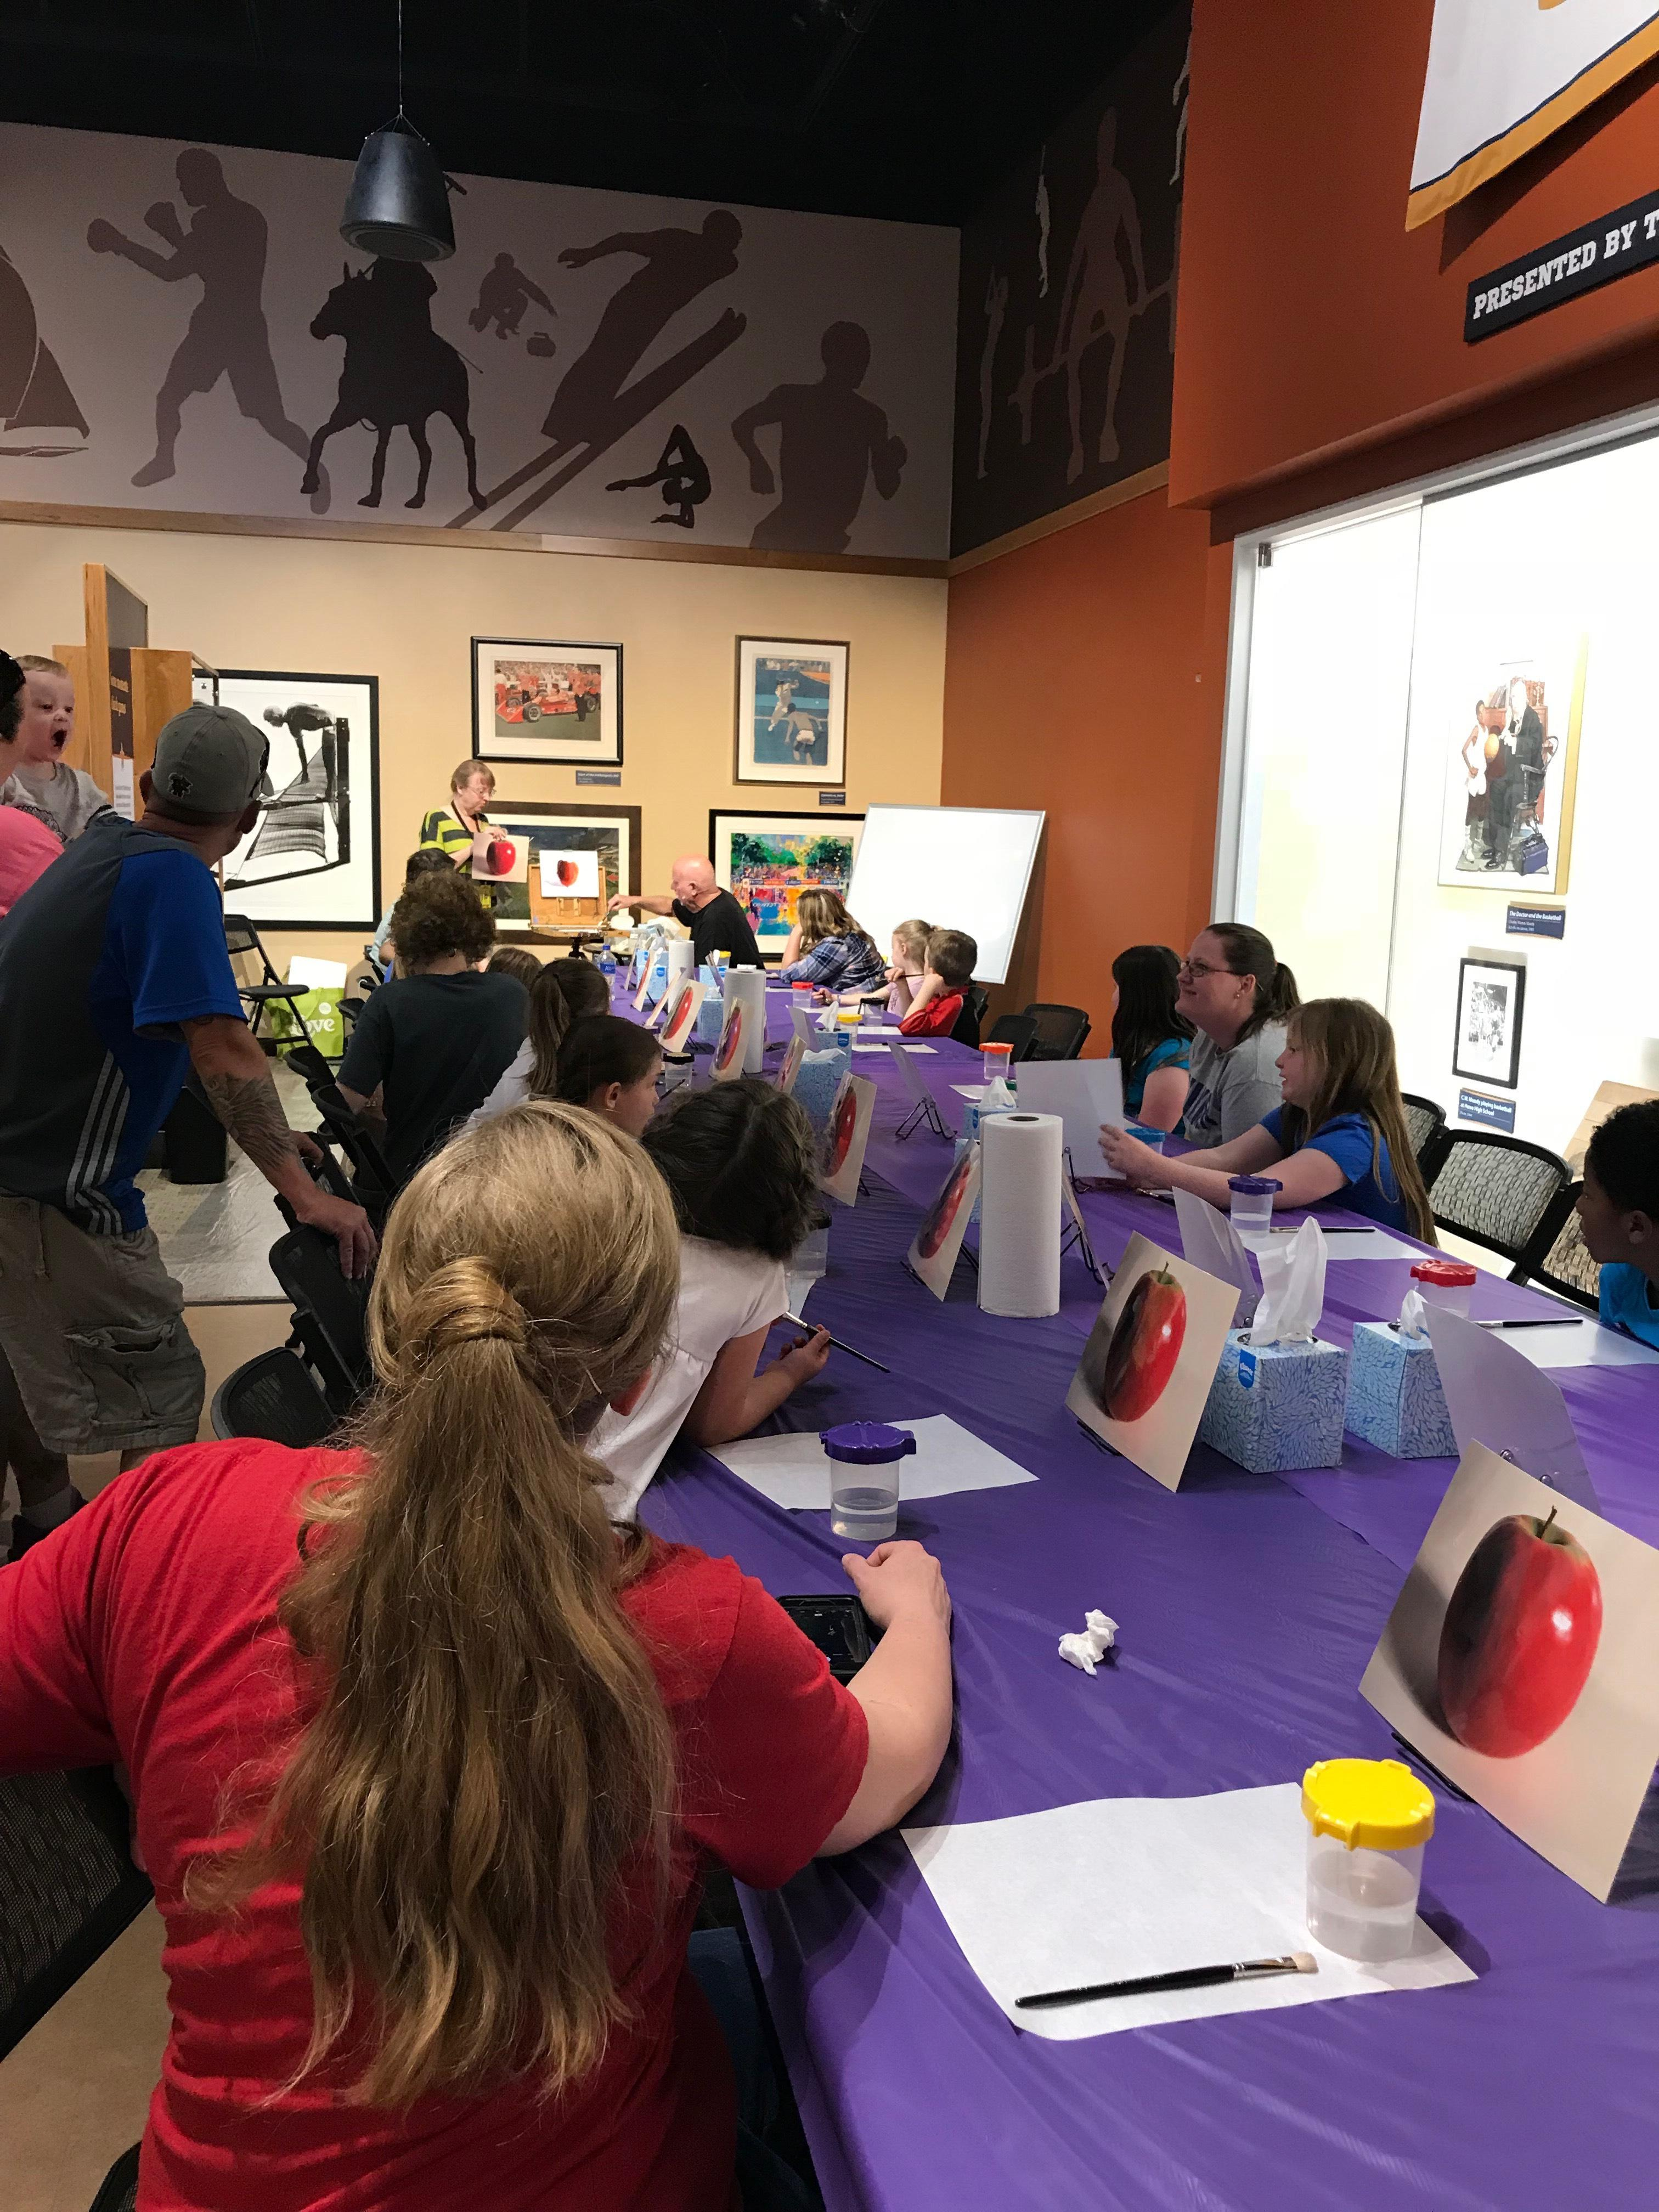 Children take a class with featured artist C.W. Mundy within the museum's National Art Museum of Sport. Select pieces are displayed from a collection of nearly 1,000 works. / Image courtesy of Children's Museum of Indianapolis // Published: 4.2.19